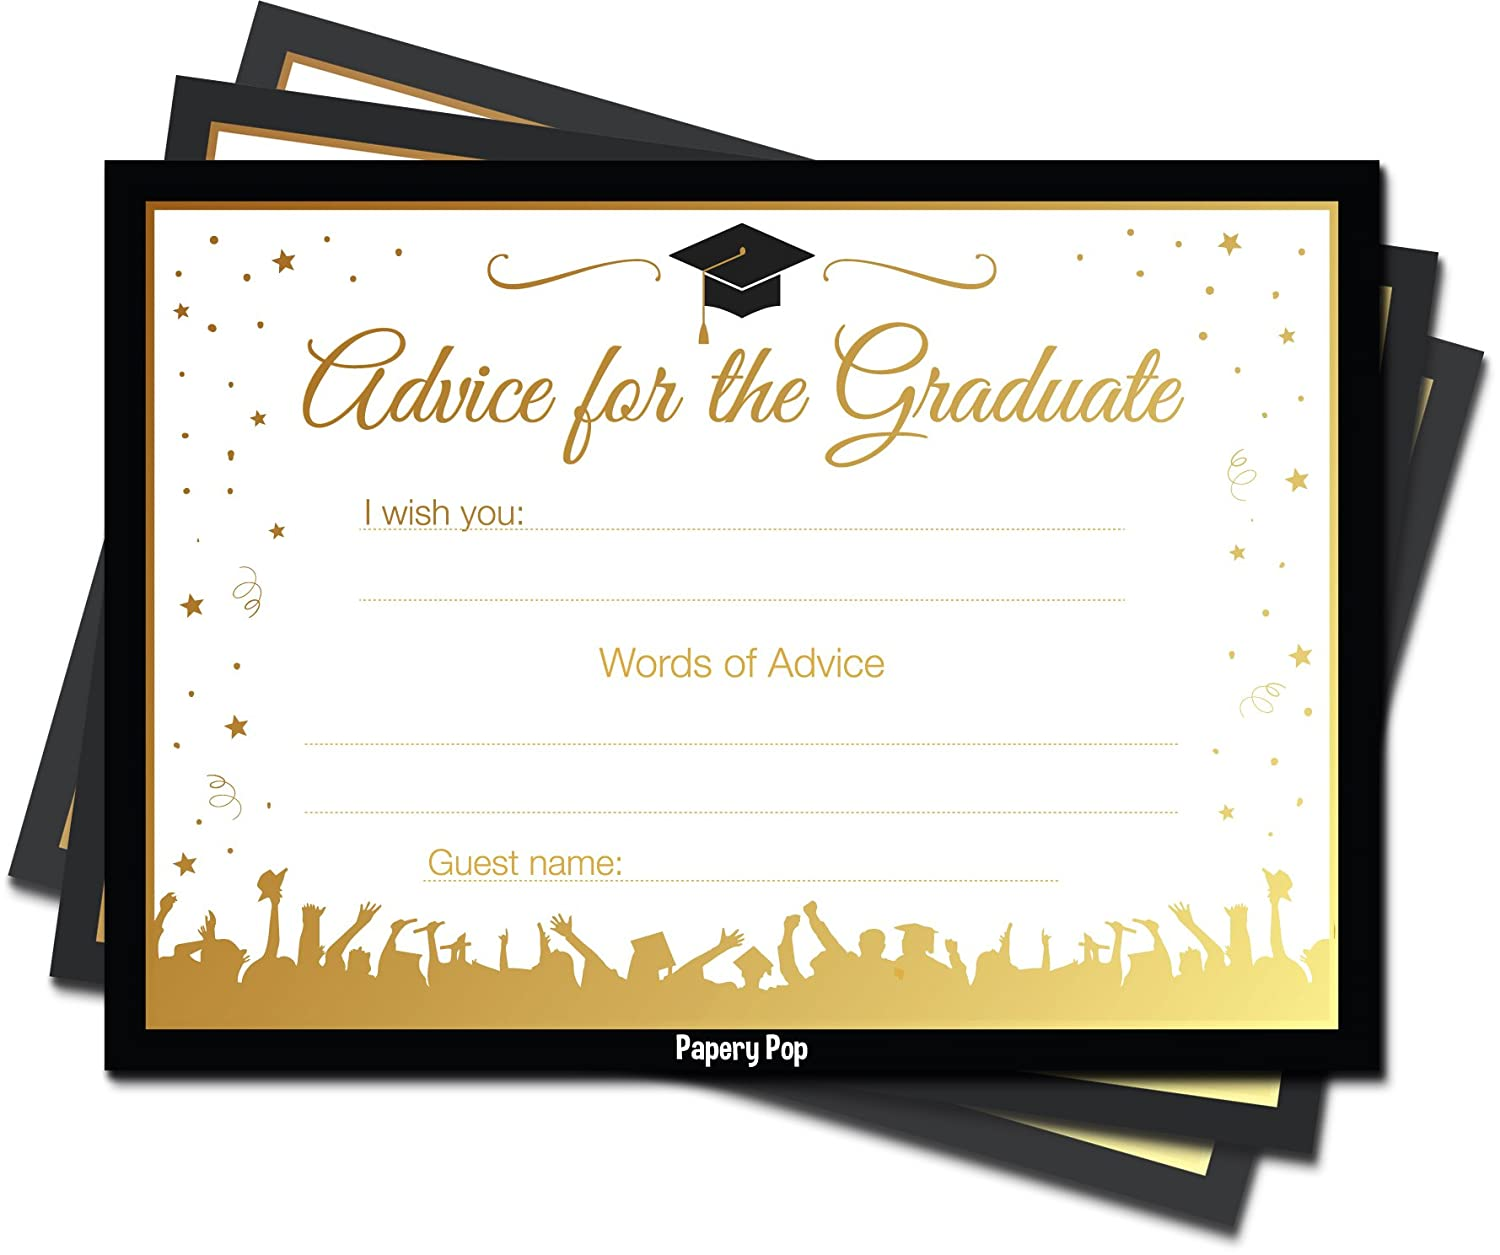 graphic relating to Free Printable Graduation Party Games named Papery Pop 2019 Commencement Tips Playing cards for The Graduate (30 Rely) - Substantial College or university or College or university Commencement Social gathering Game titles Functions Invites Decorations